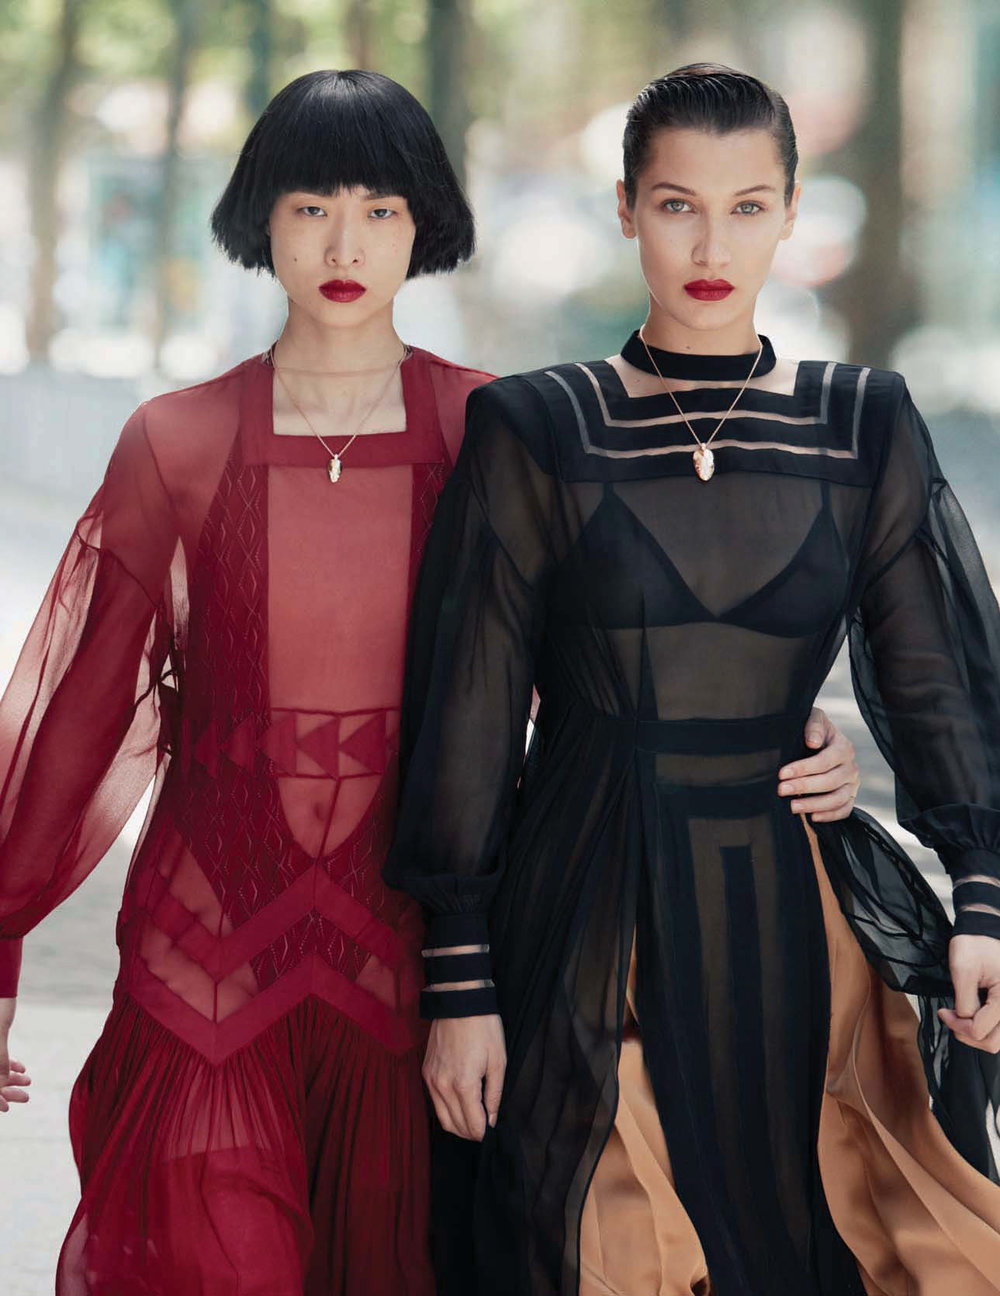 vogue-china-september-2017-bella-hadid-chu-wong-by-patrick-demarchelier-09.jpg